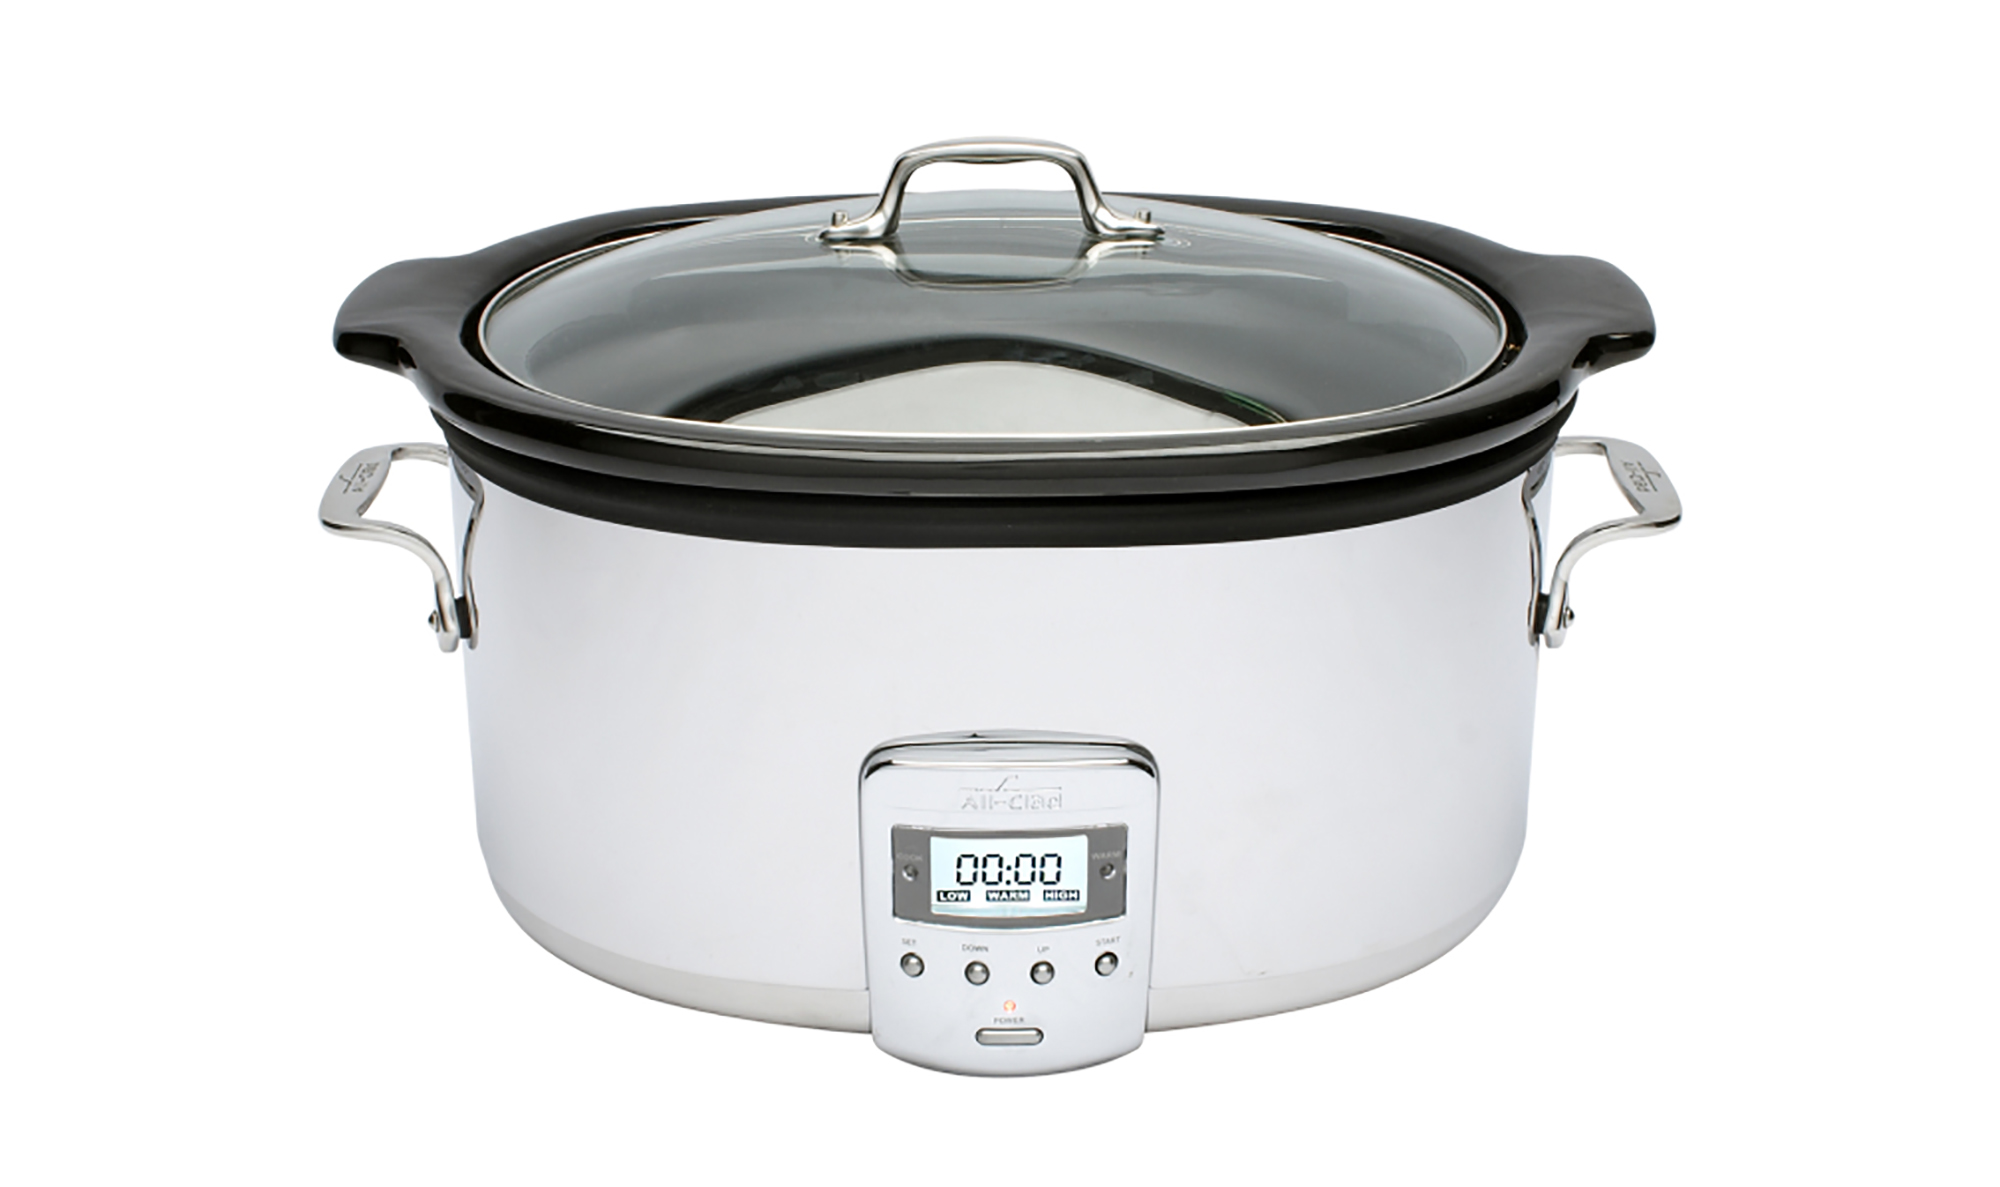 All-Clad Slow Cooker